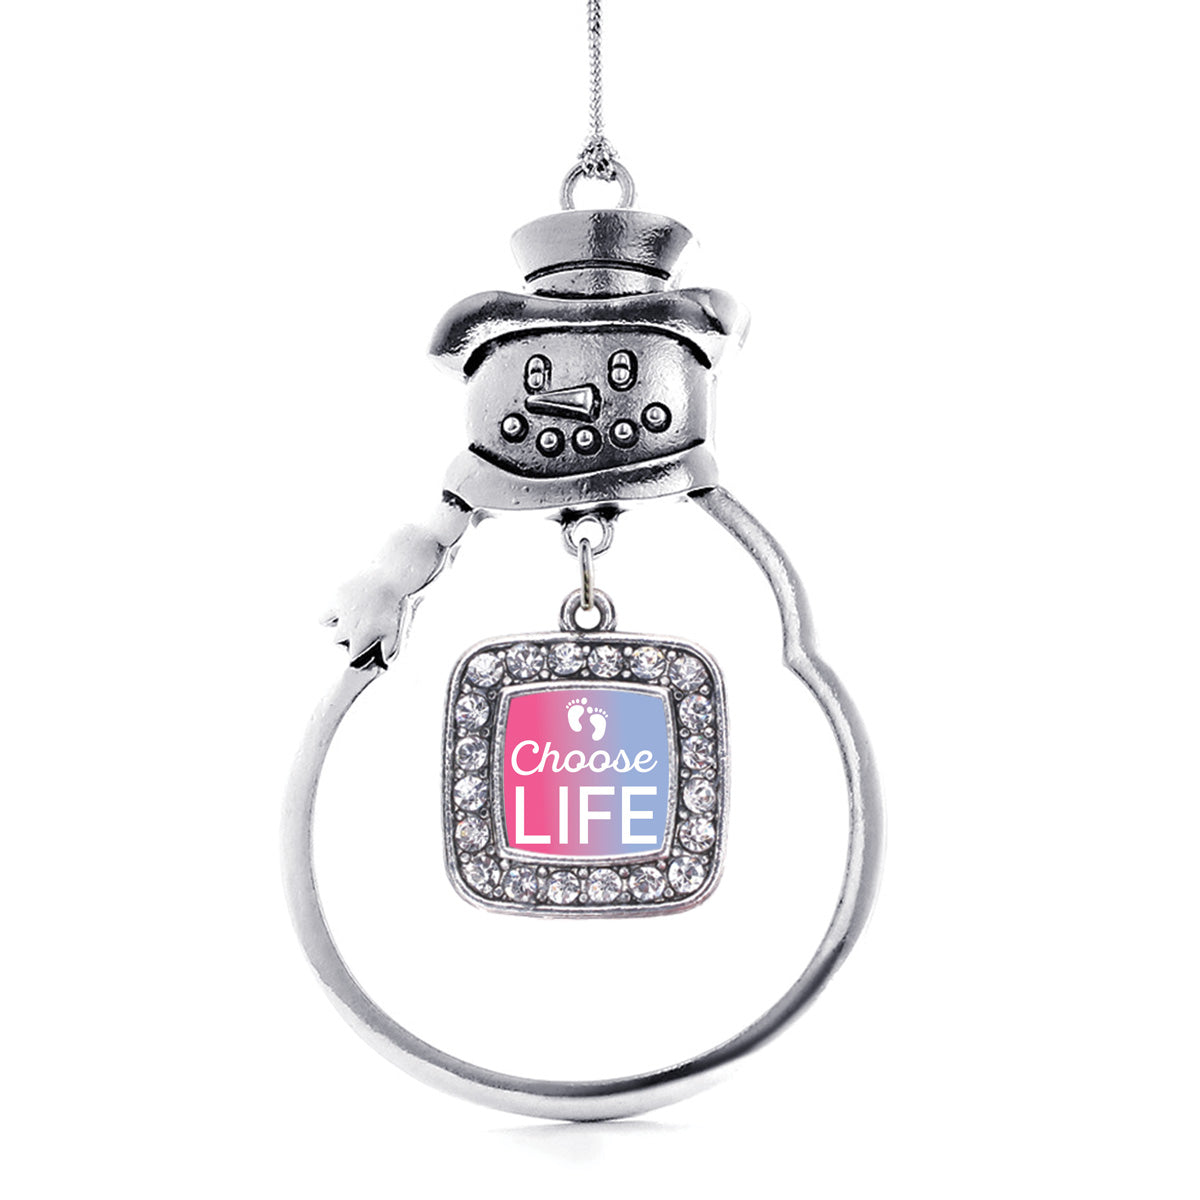 Choose Life Square Charm Christmas / Holiday Ornament